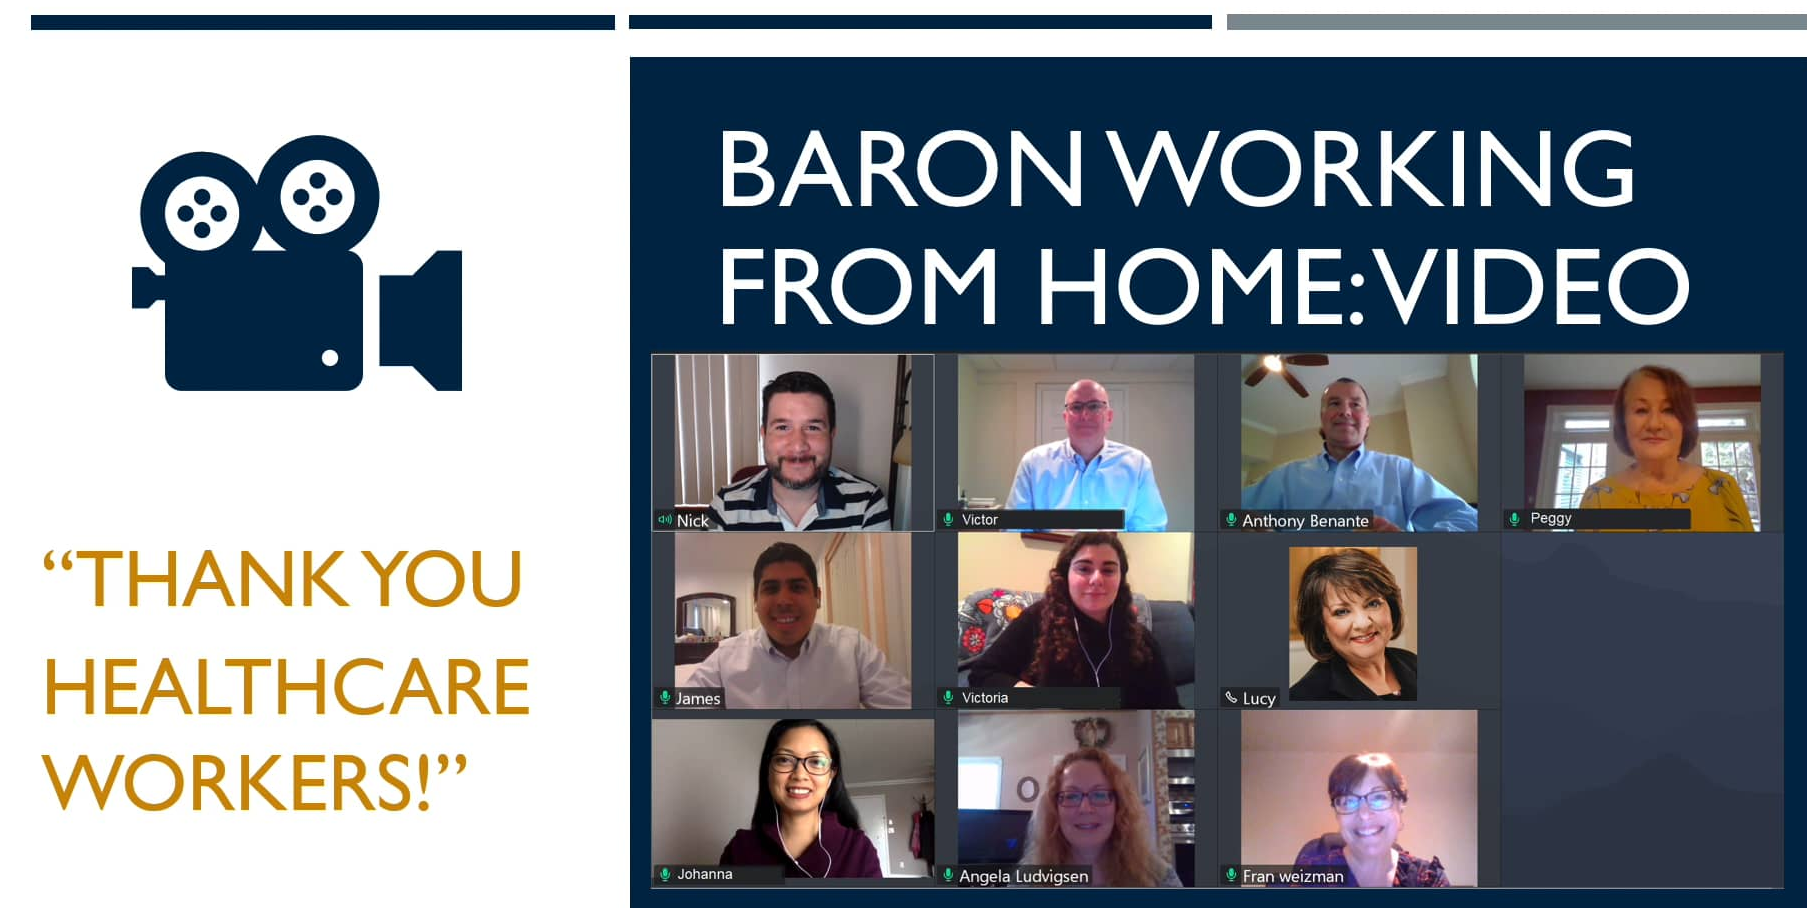 Baron Working from Home Video - Thank You Healthcare Workers! Thumbnail